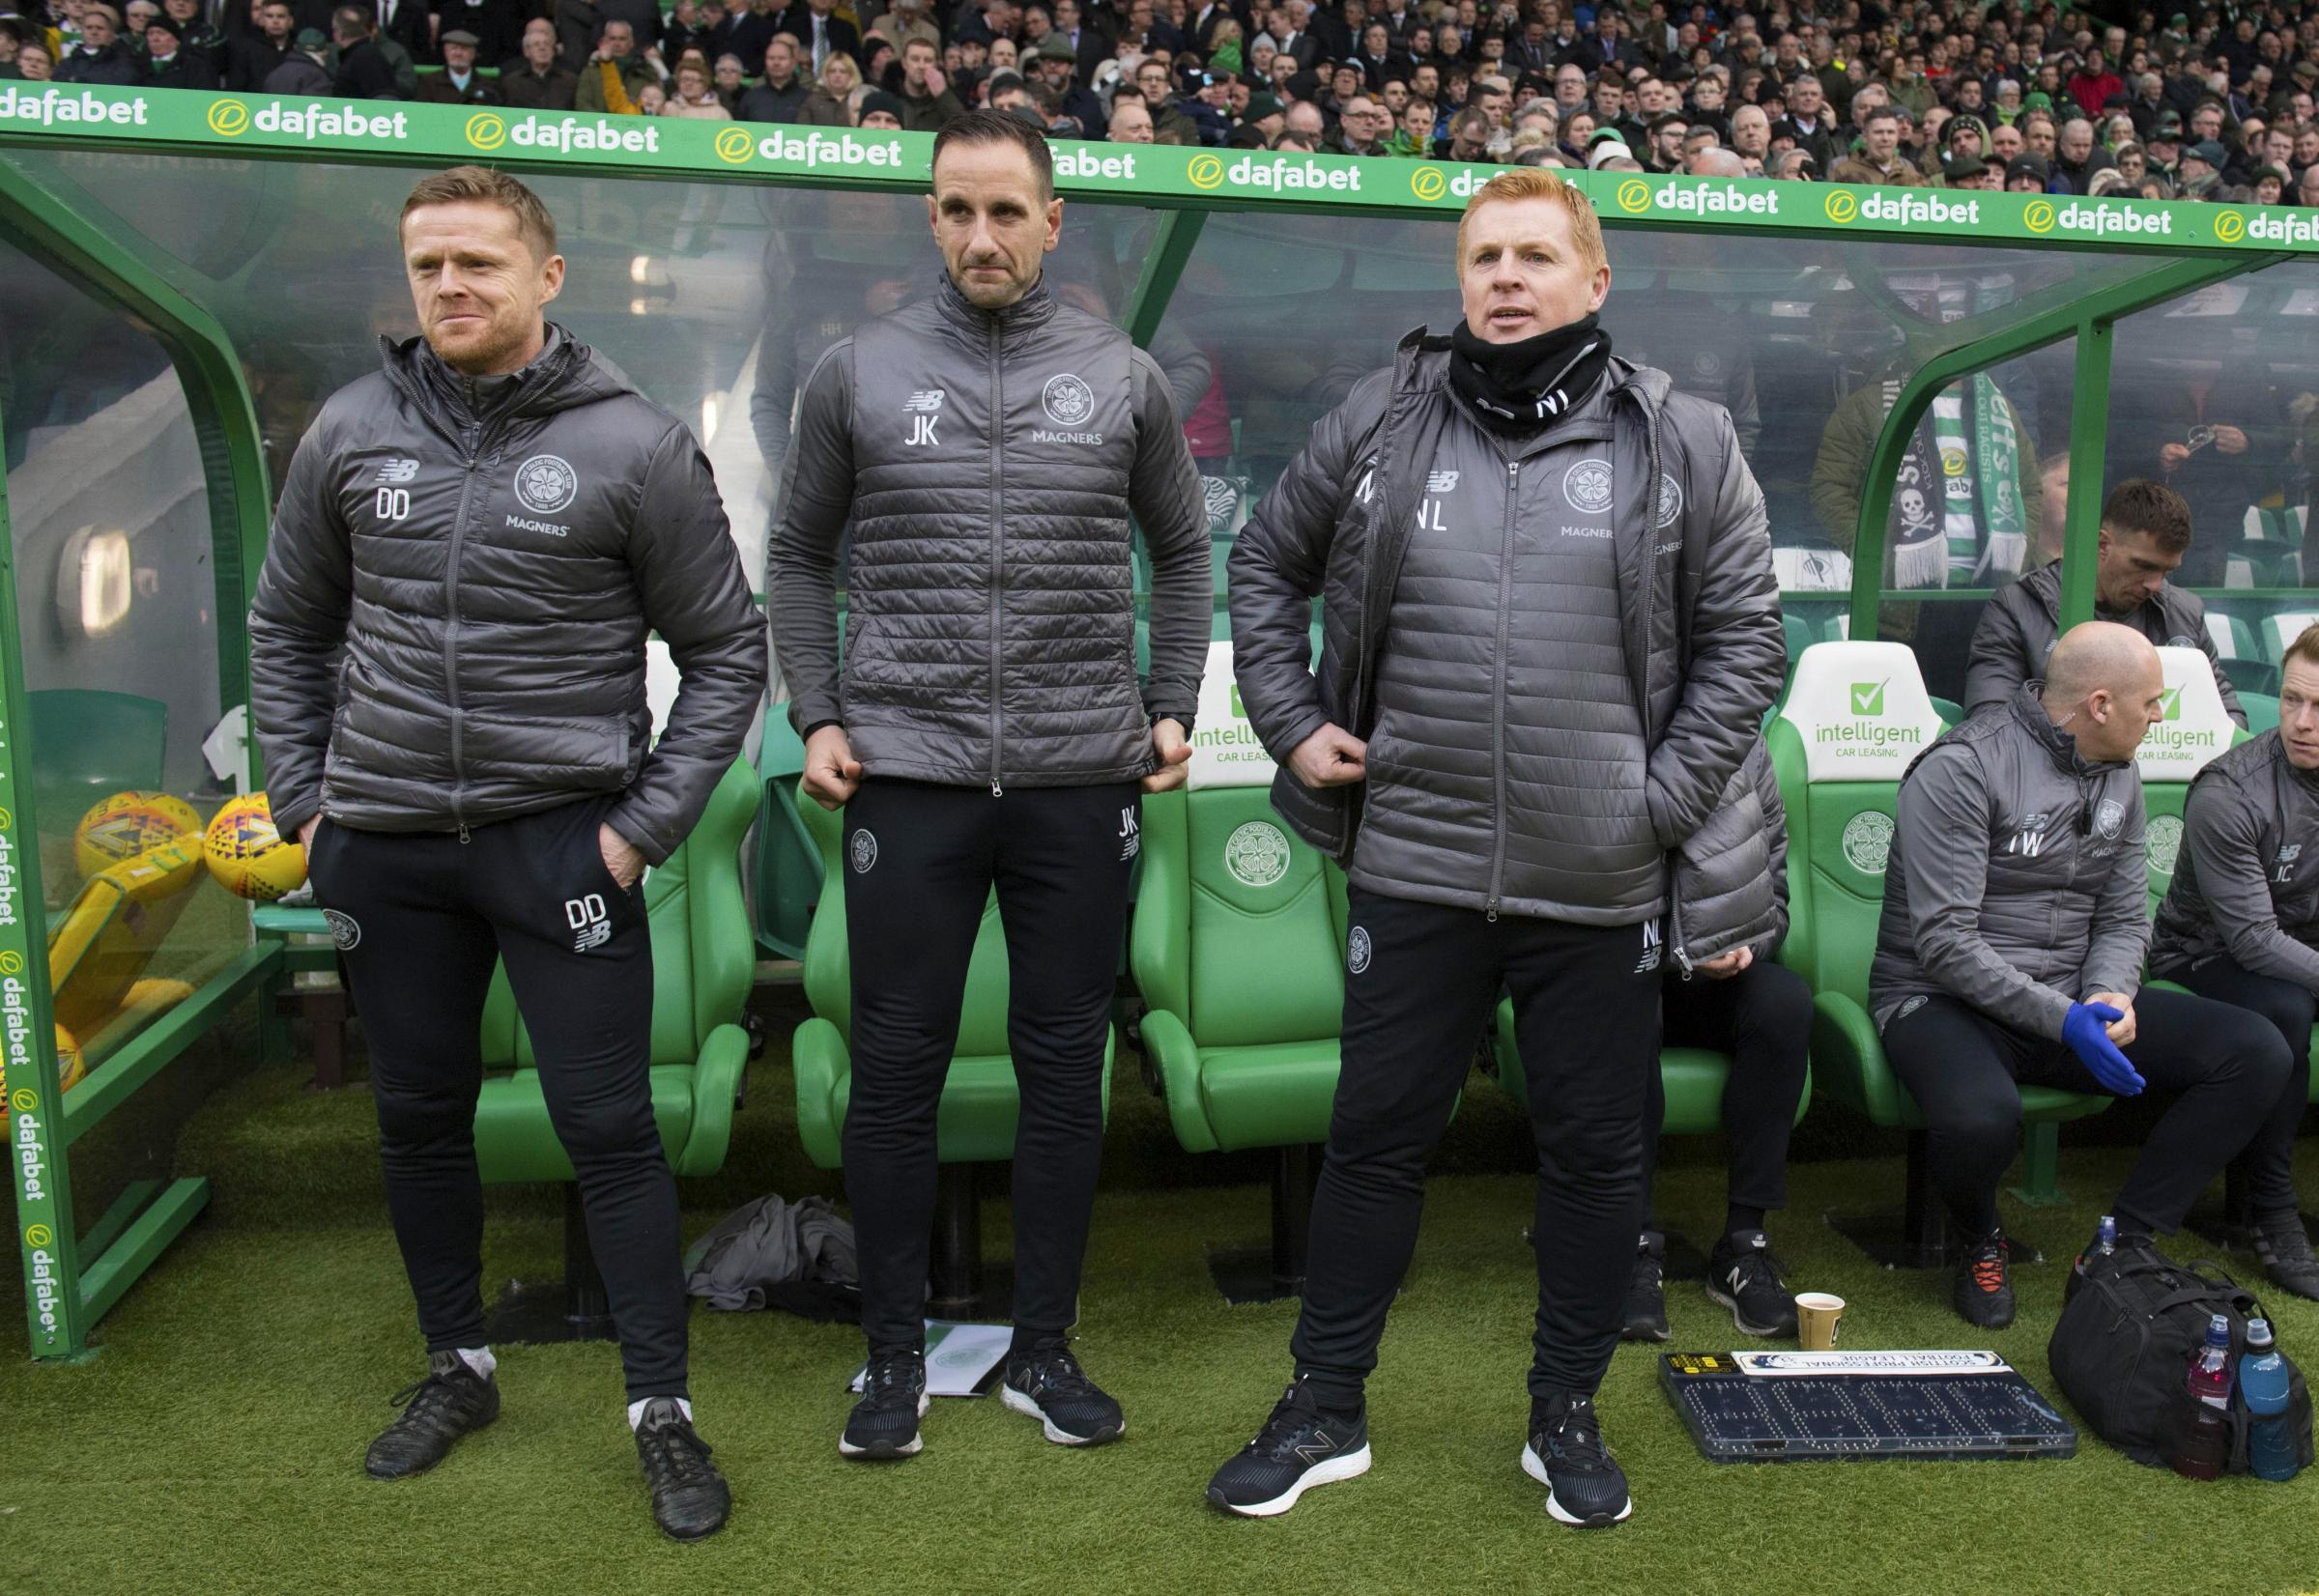 John Kennedy and Damien Duff make up the new Celtic coaching team, along with interim manager Neil Lennon.